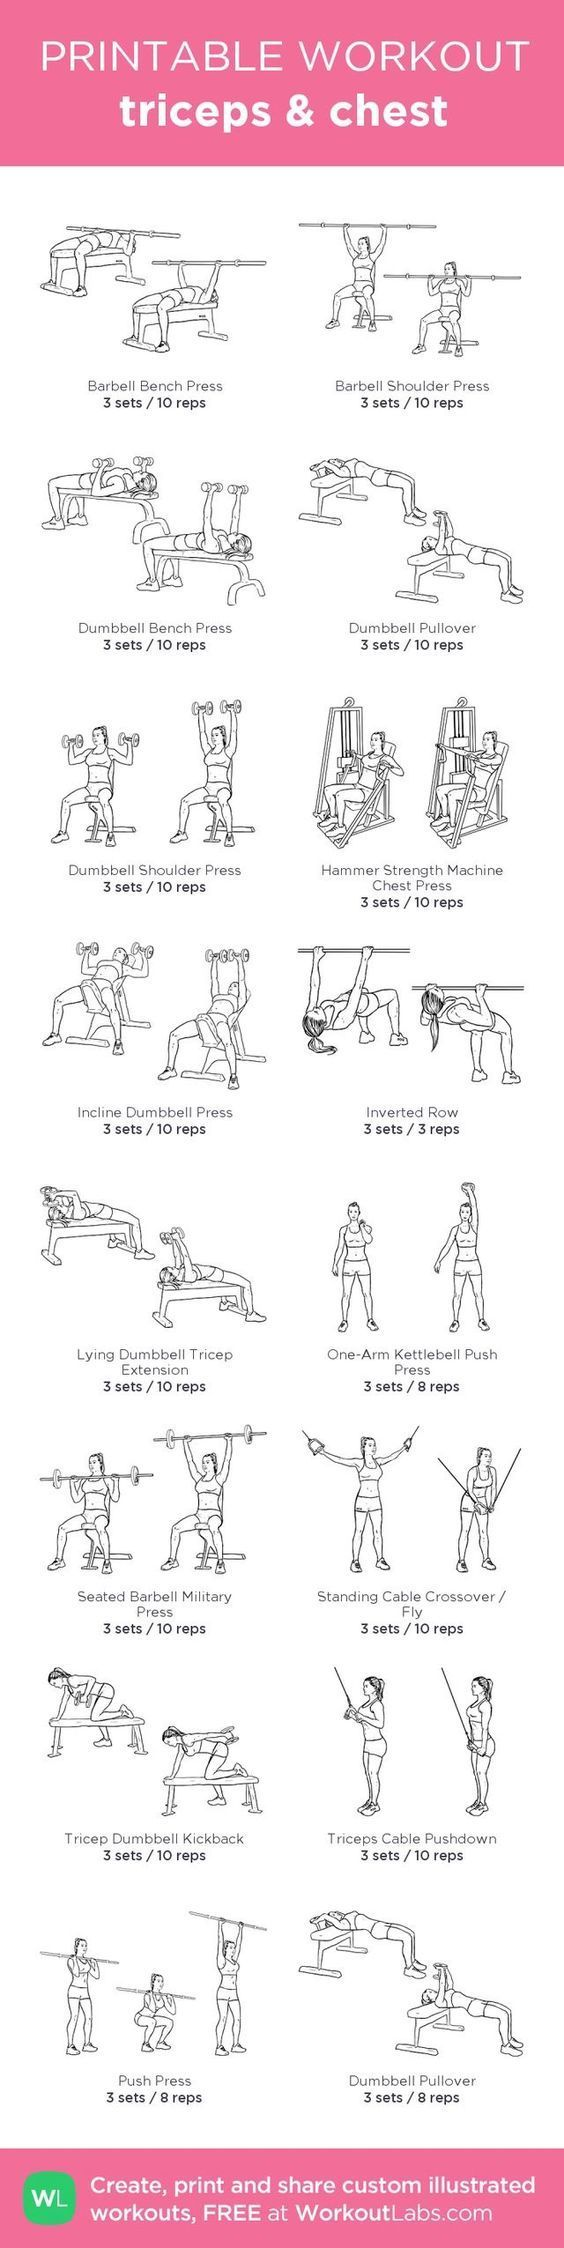 Triceps and Chest Workout | Posted By: CustomWeightLossProgram.com